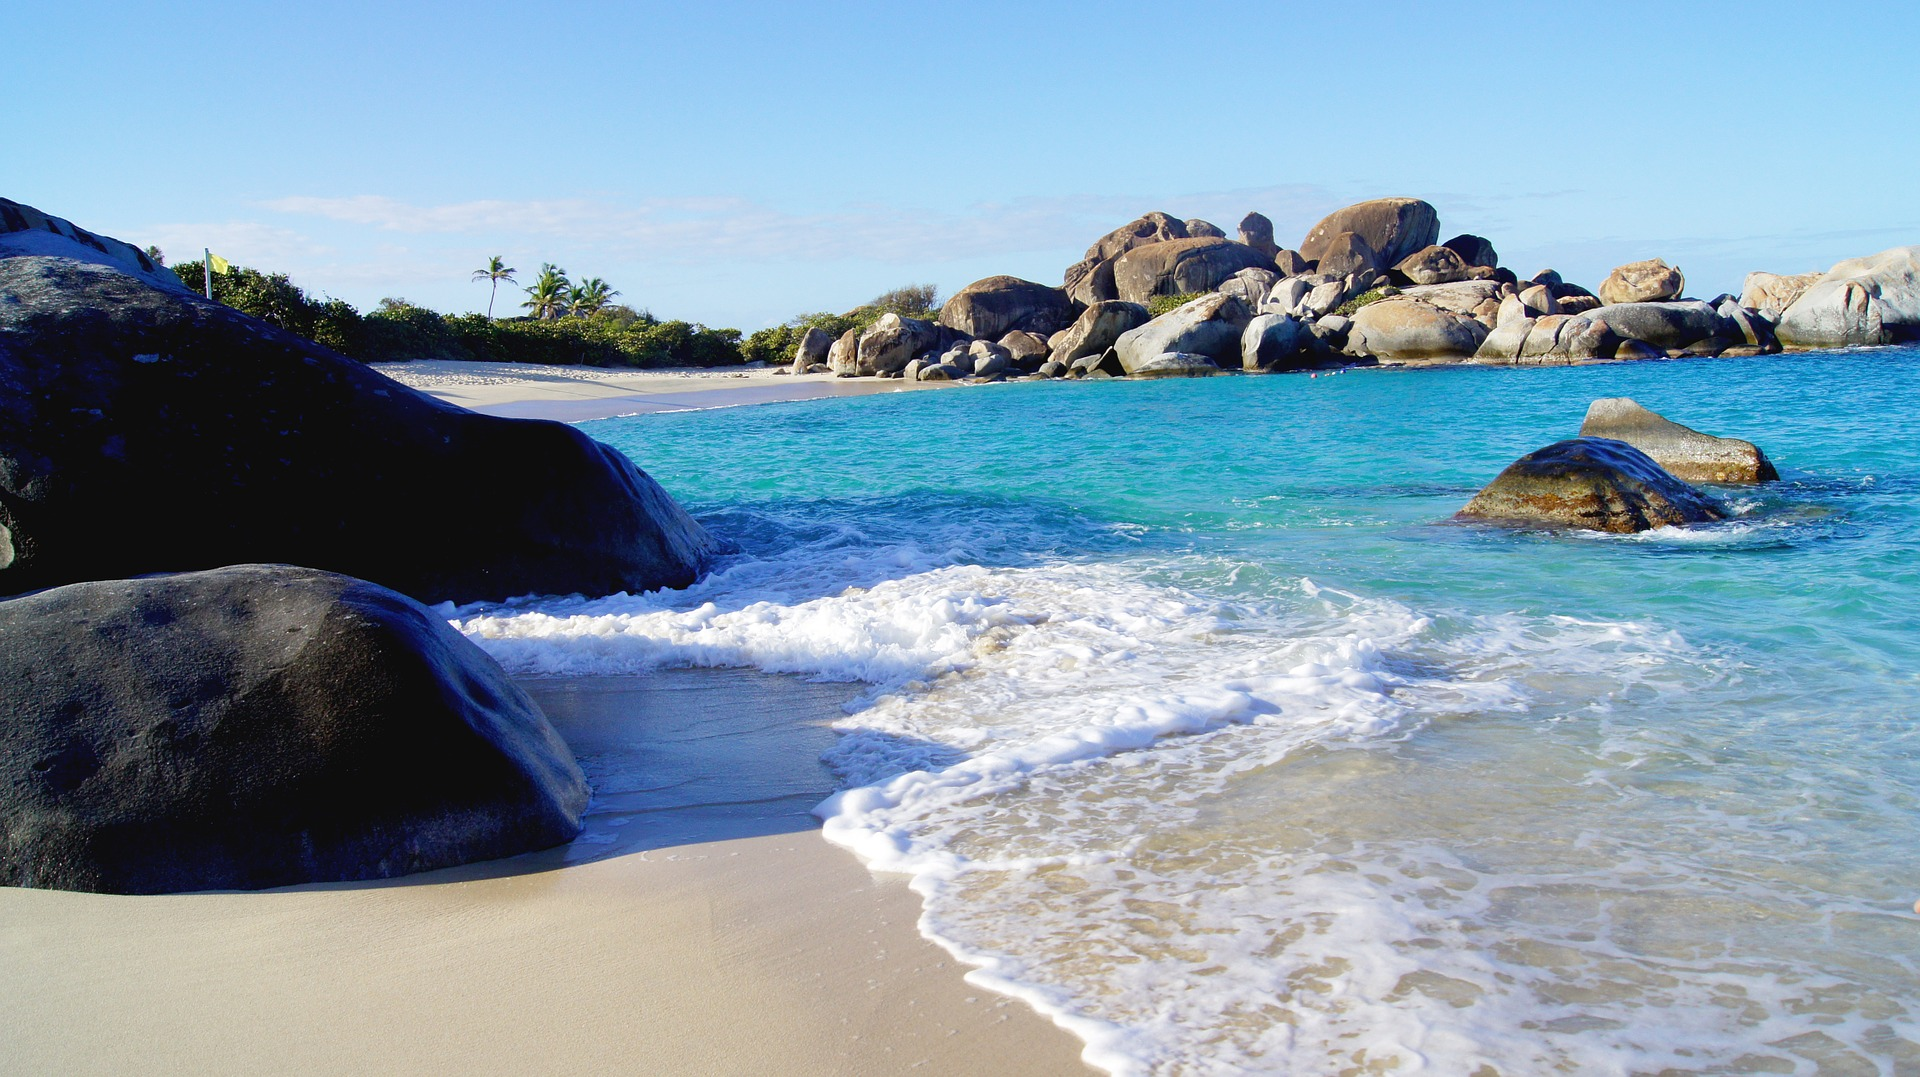 surf washing up on shore in US Virgin Islands with rocks all around